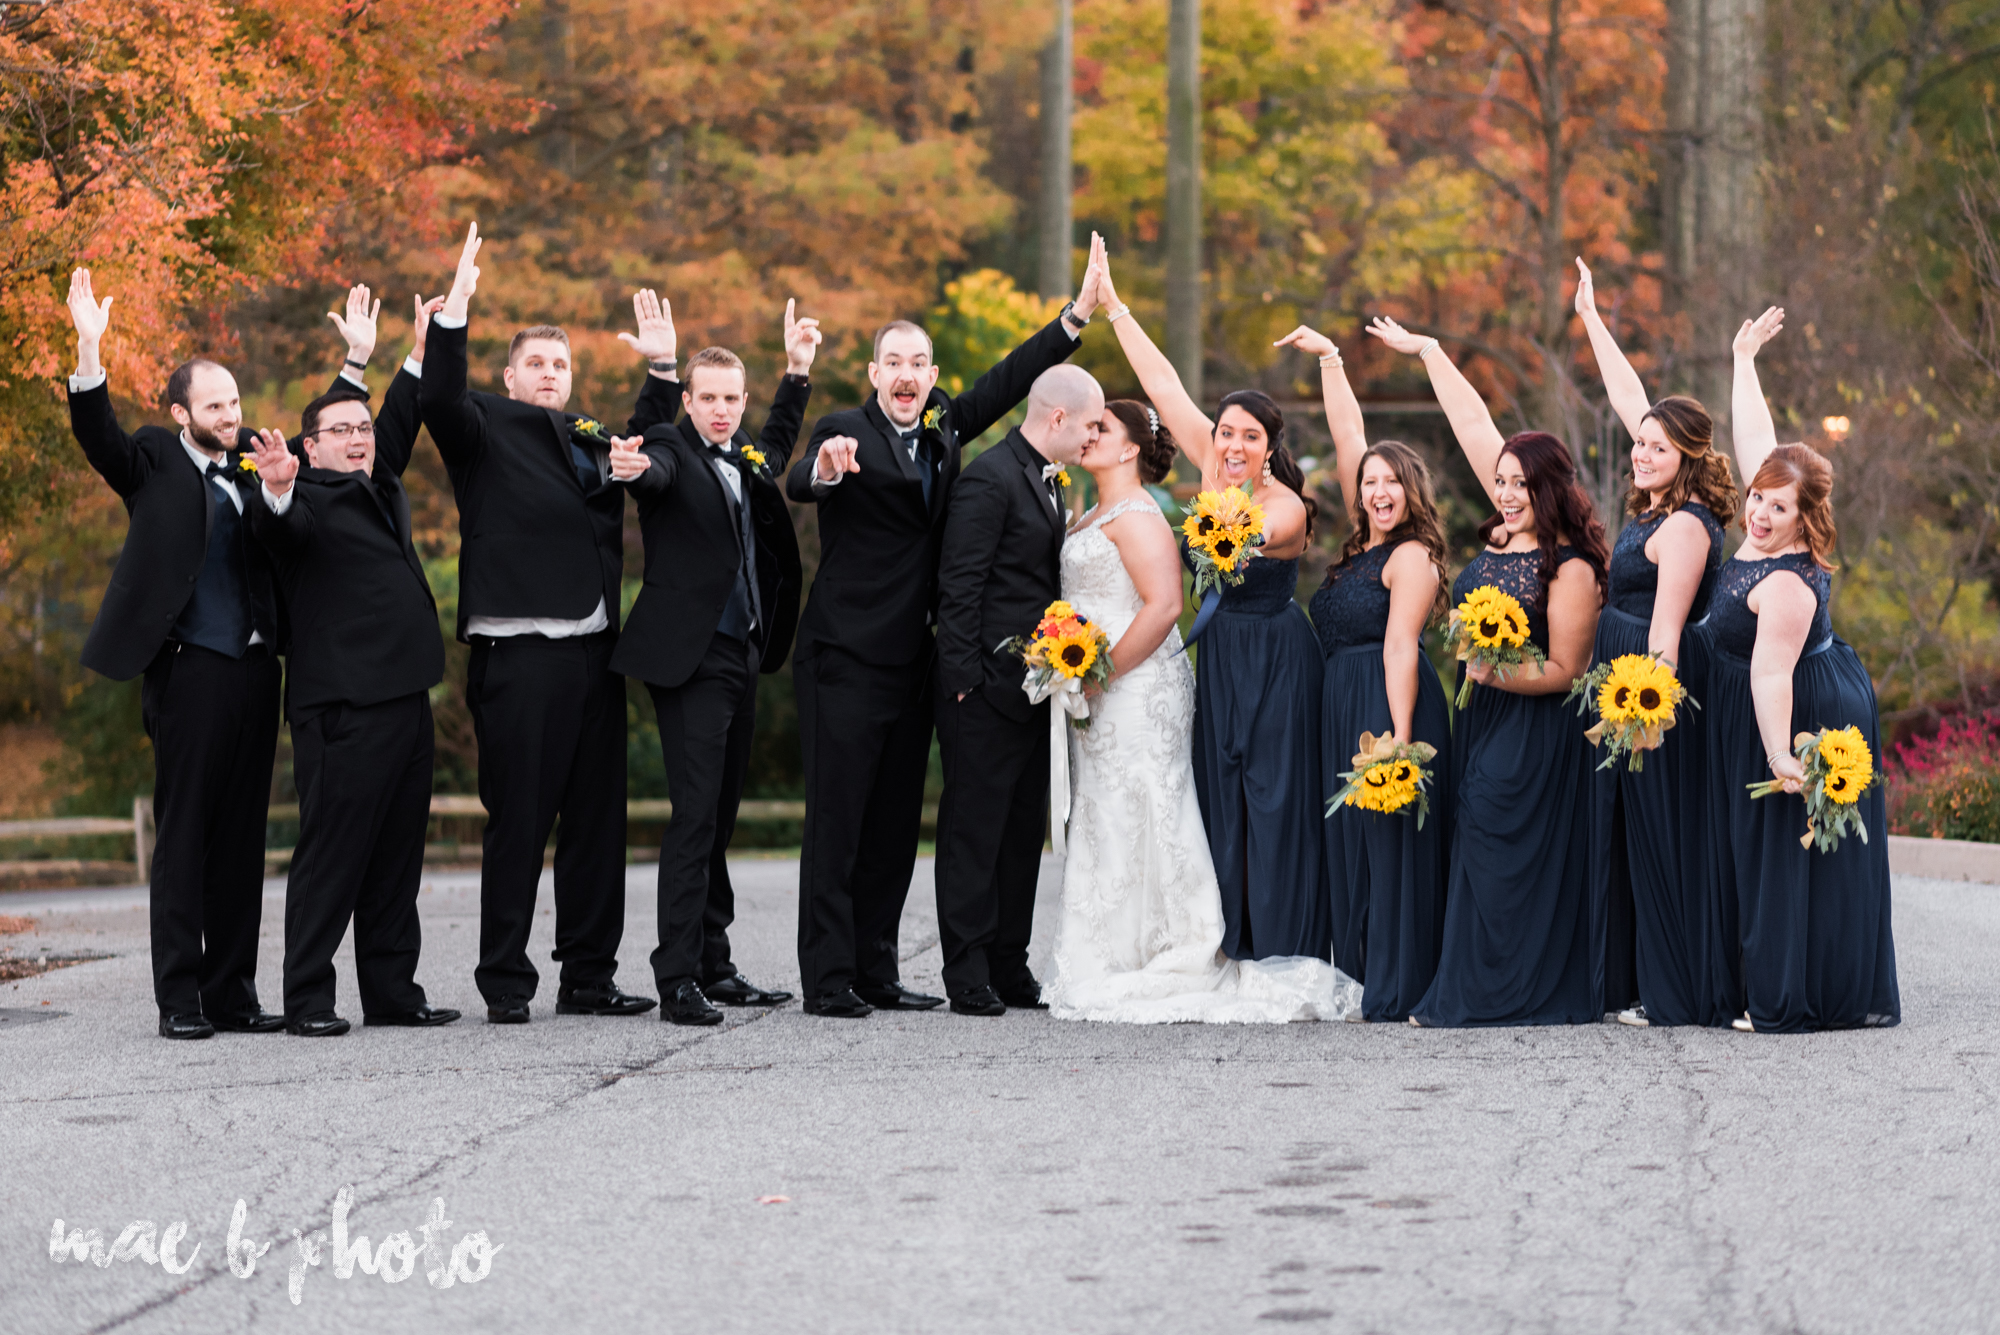 kaylynn & matt's fall zoo wedding at the cleveland metroparks zoo in cleveland ohio photographed by mae b photo-37.jpg